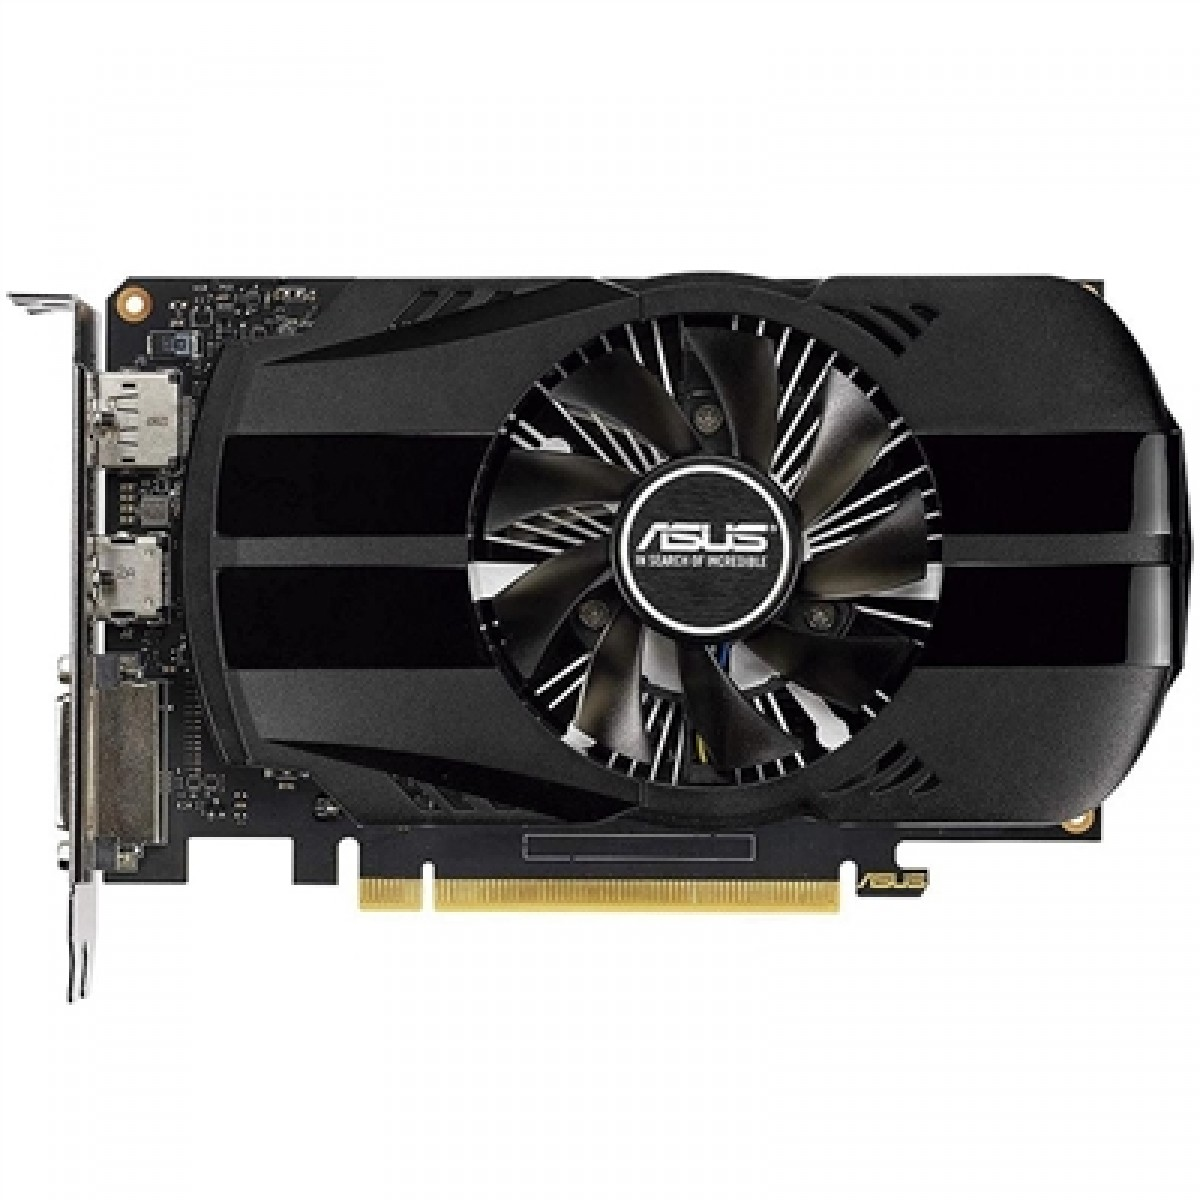 Placa de Vídeo Asus, GeForce GTX 1650 Phoenix 4G, 4GB, DDR5, 128Bit, 90YV0CV1-M0NA00